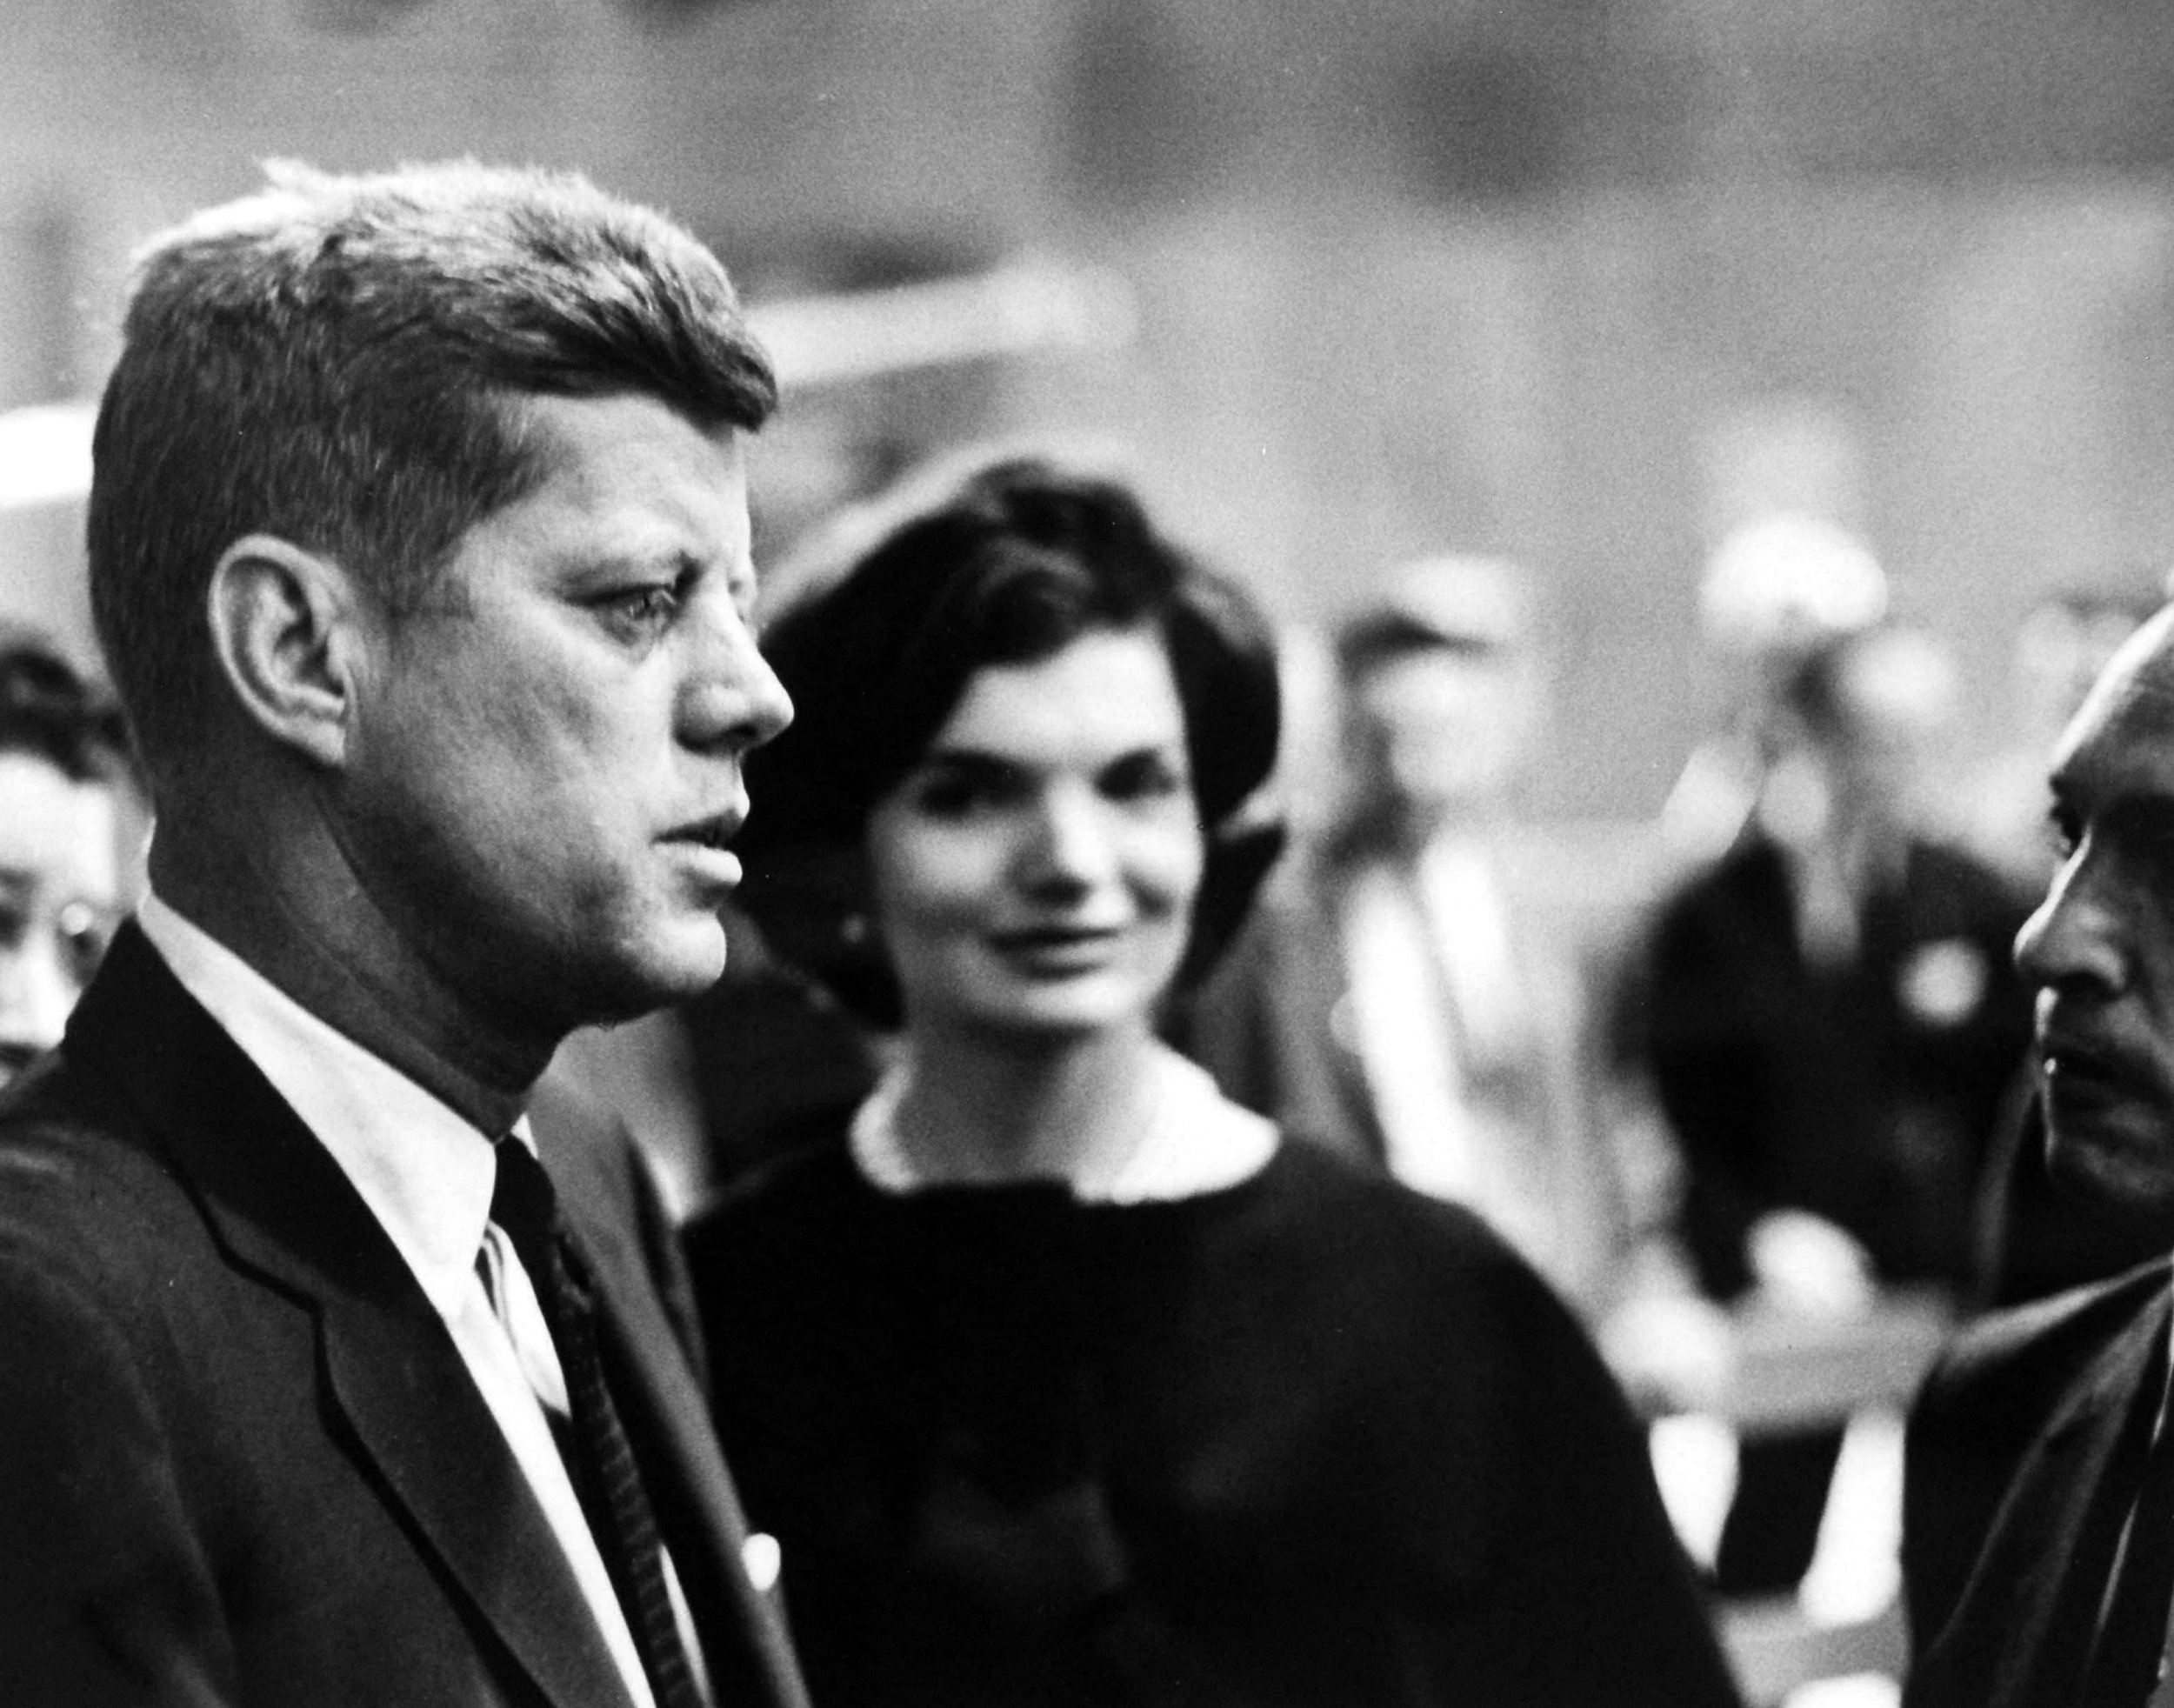 Massachusetts Senator, John F. Kennedy with his wife, Jacqueline Kennedy, prior to televised presidential debate